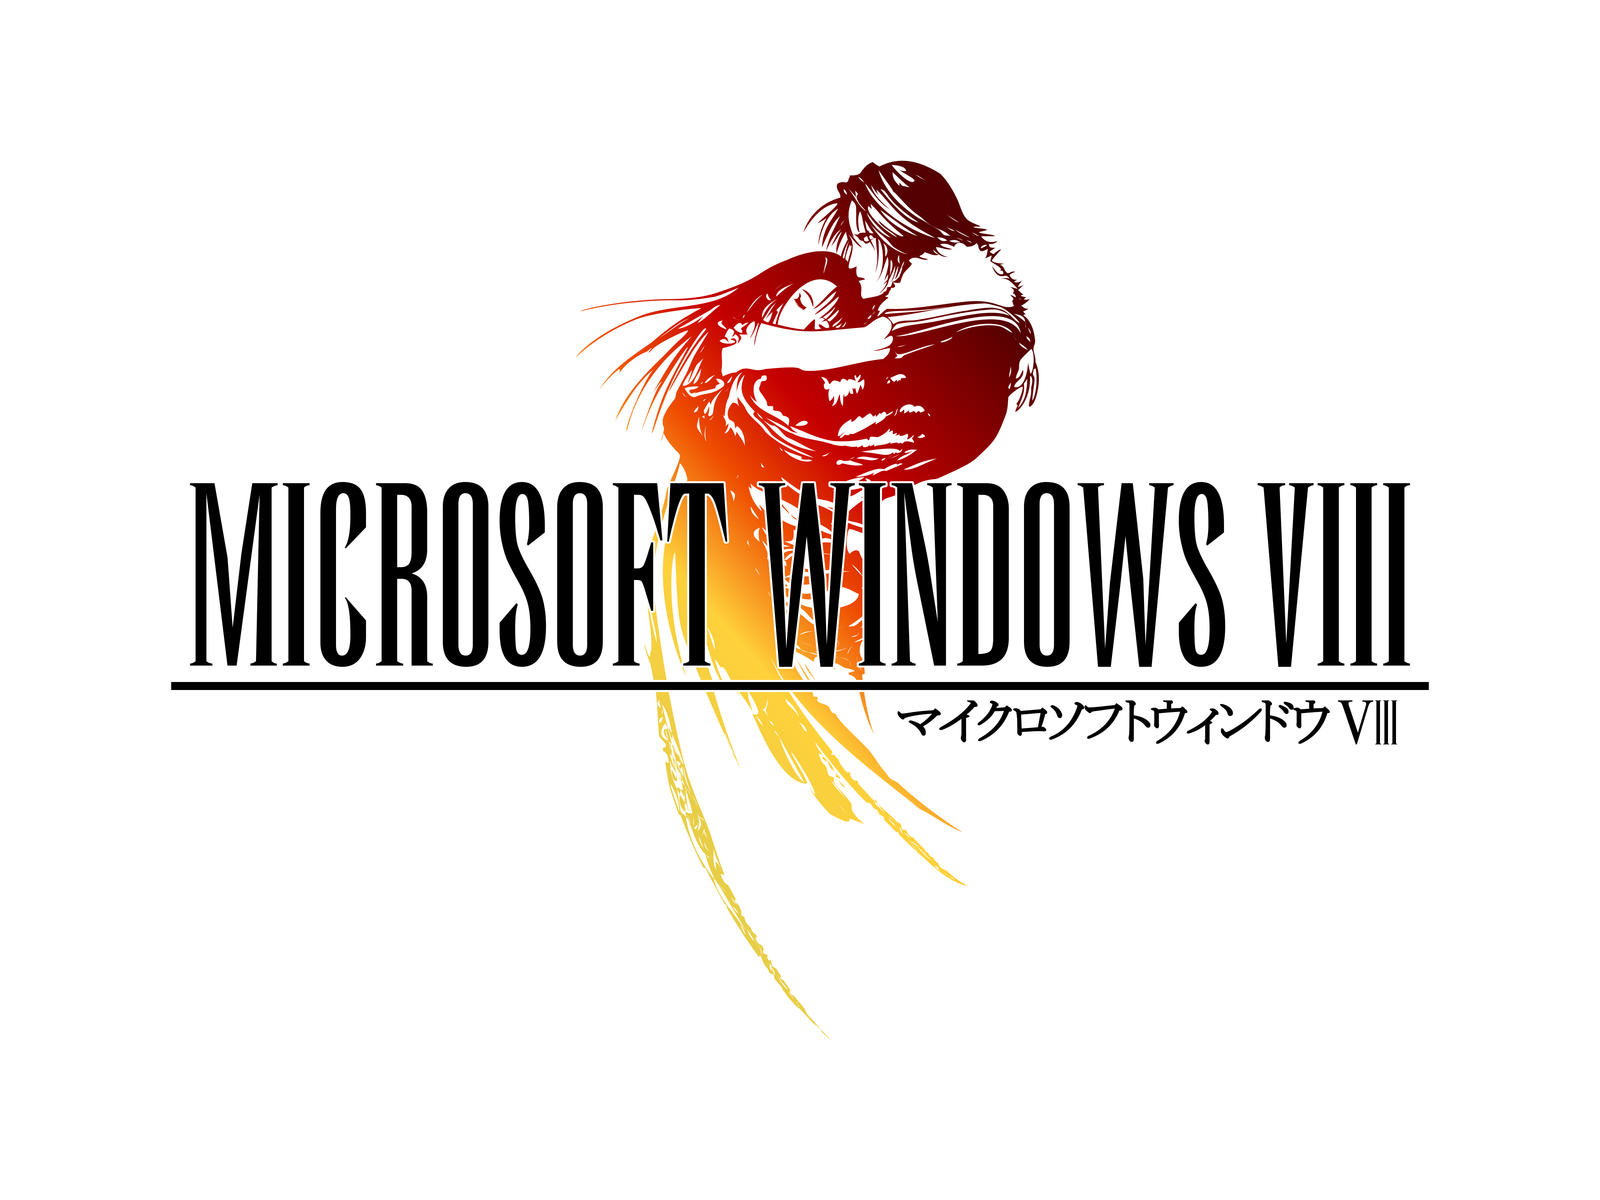 Final Fantasy VIII style Windows 8 Logo